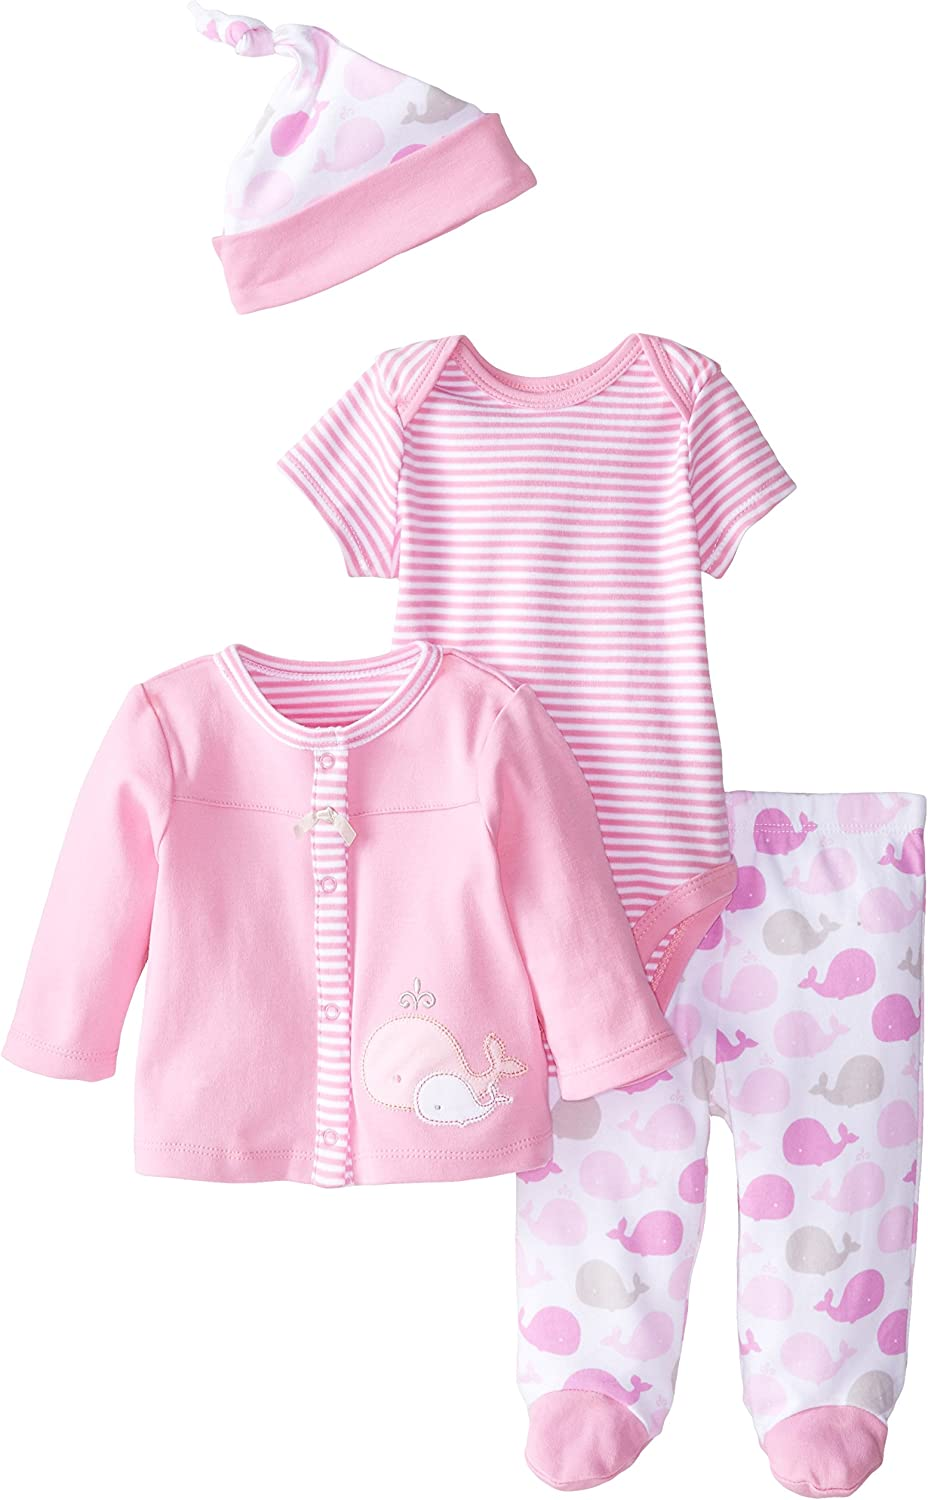 Offspring - Baby Apparel Girls' Baby-Newborn Whales 3 Piece Tmh Set and Hat